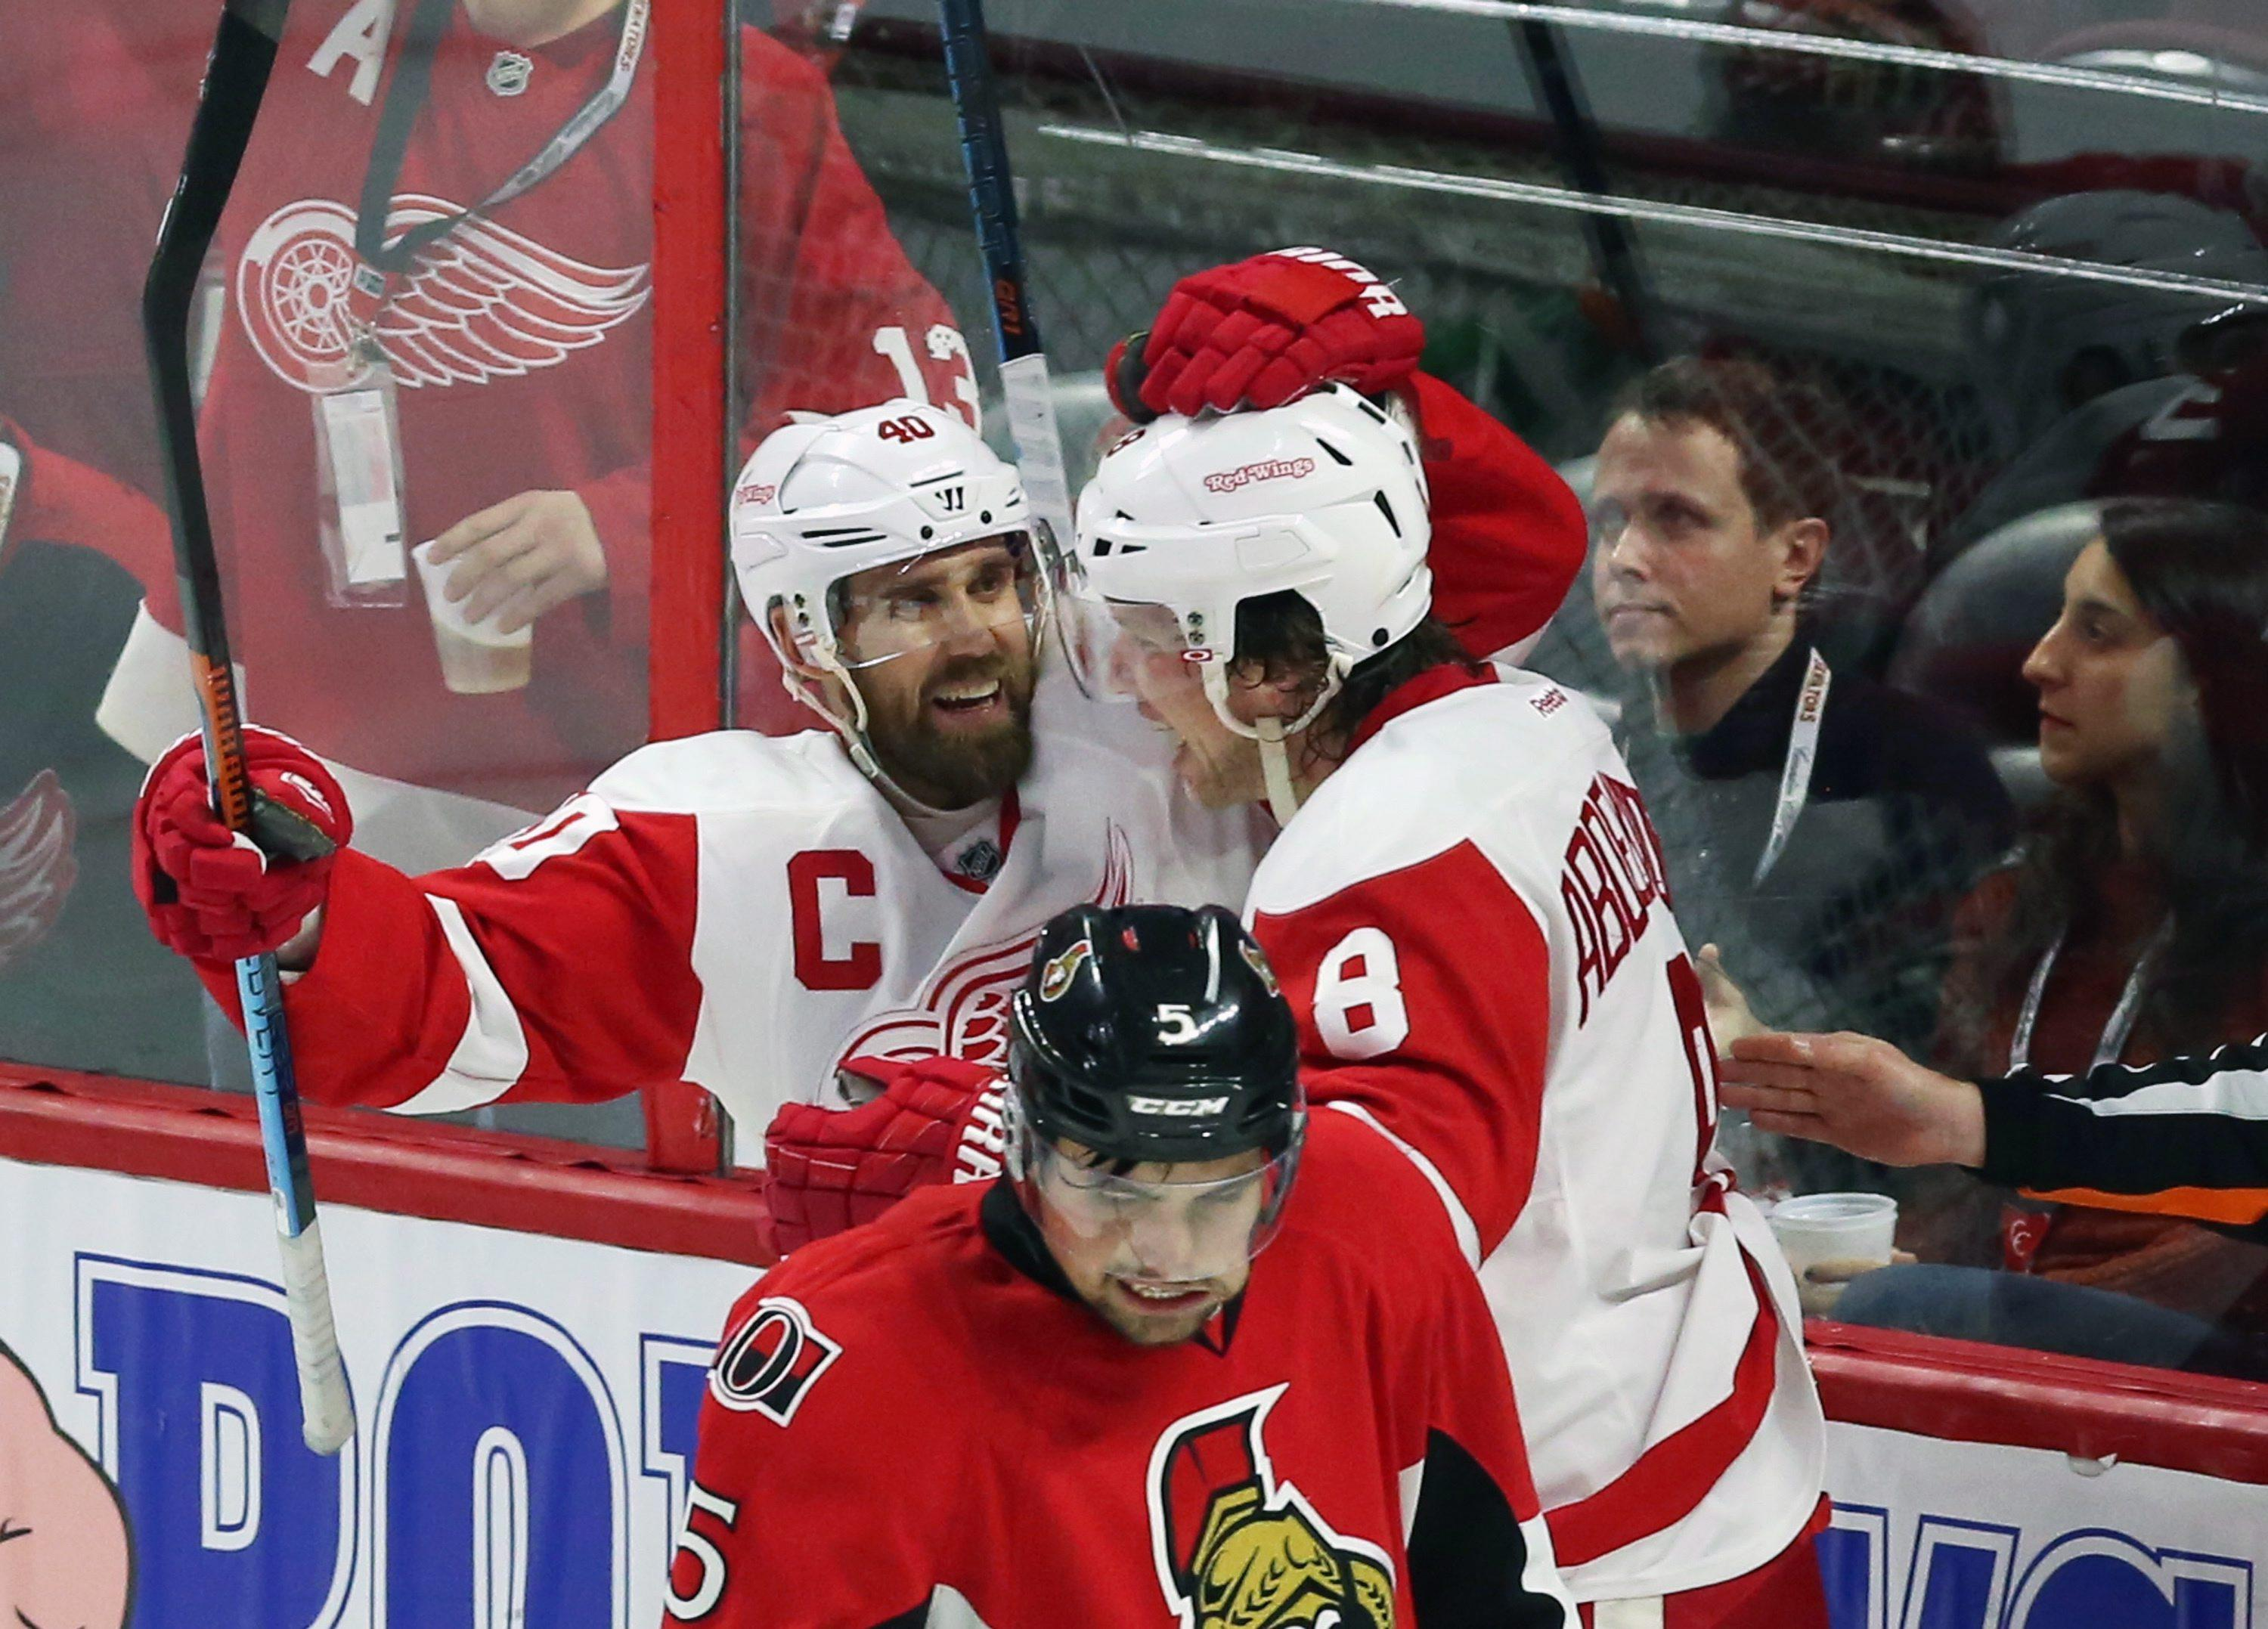 Nyquist scores in OT to lead Red Wings over Senators 3-2